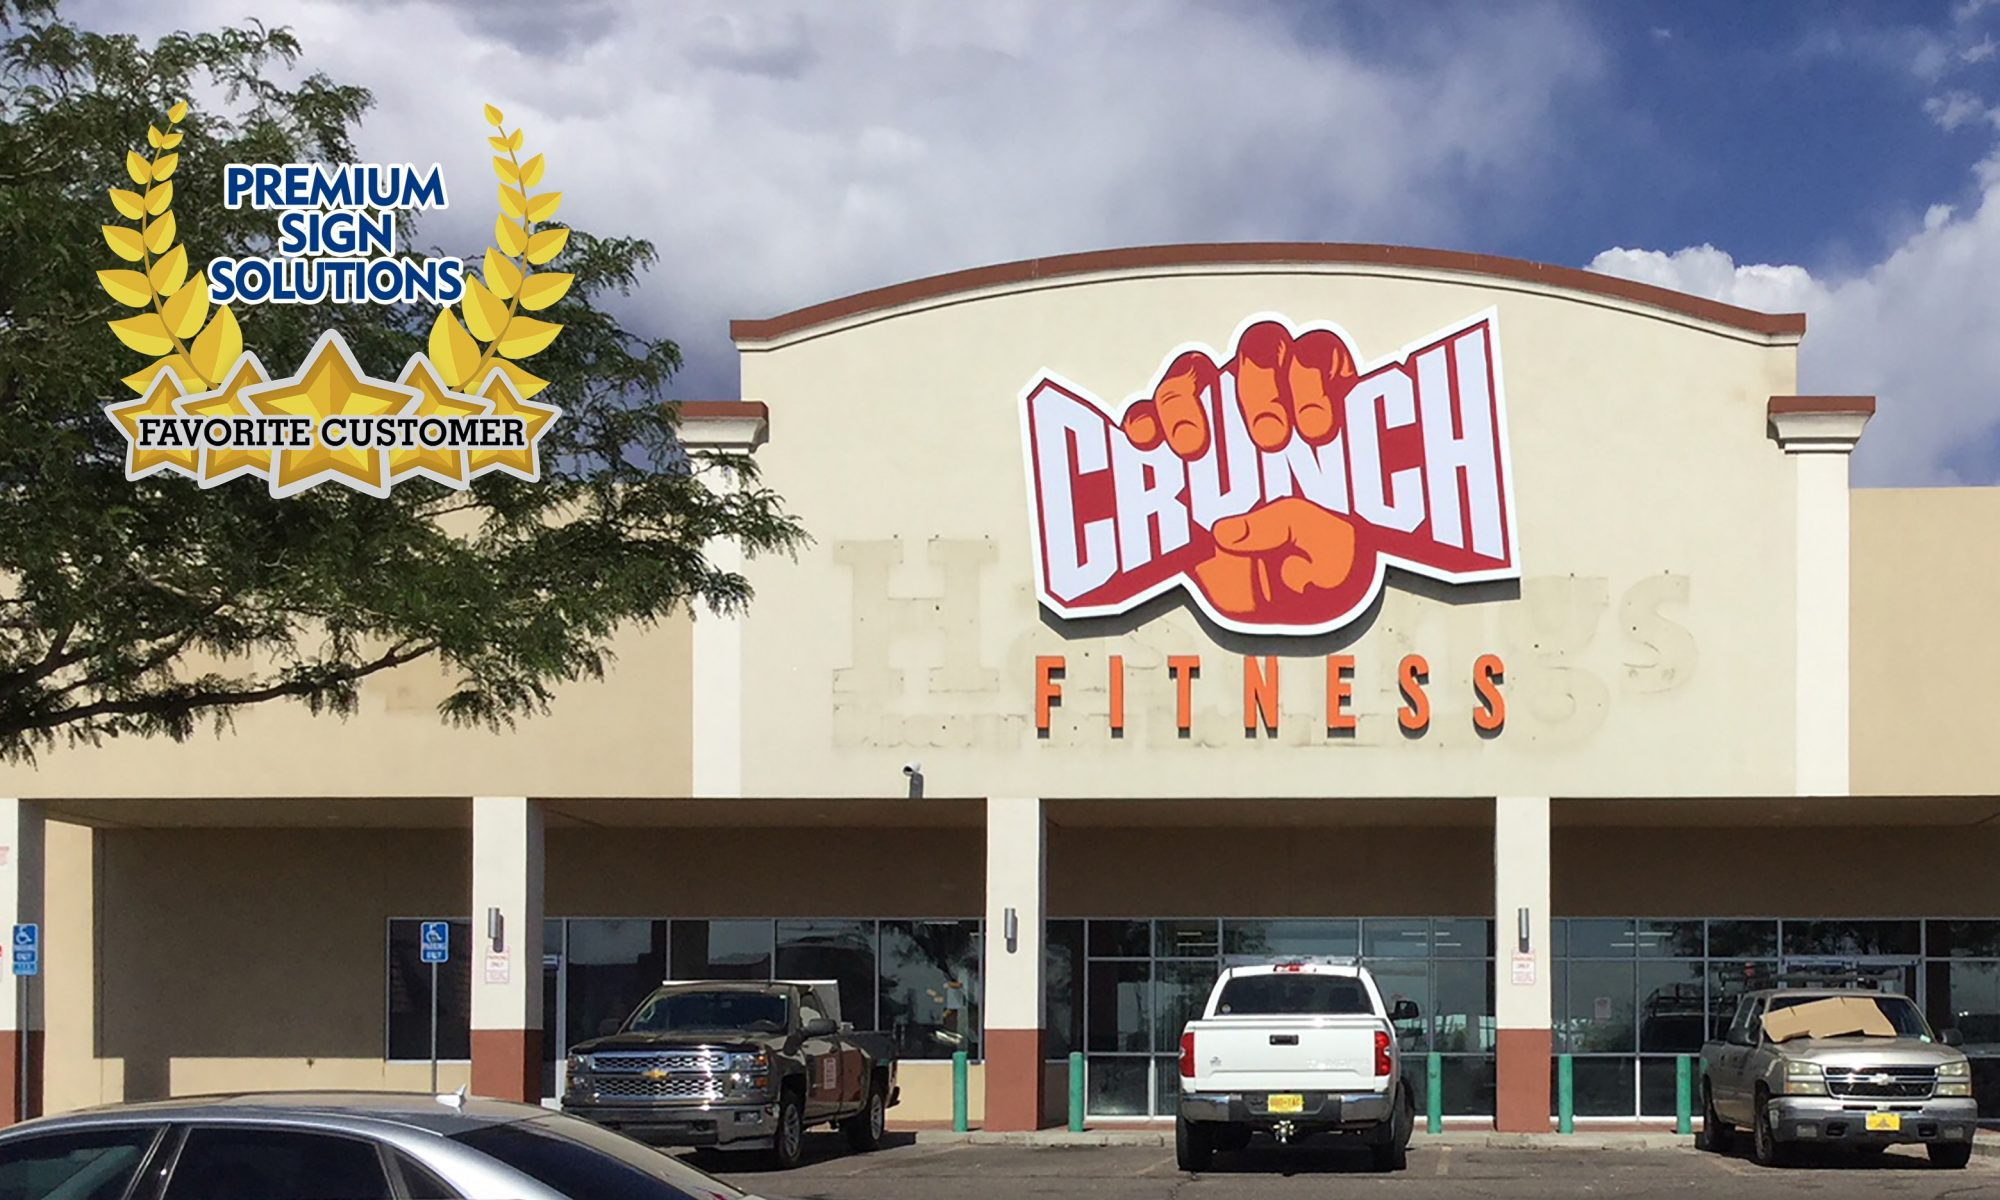 Photo: Crunch Fitness gym sign by Premium Sign Solutions. Crunch Fitness is one of our loyal and favorite customers and they are holding online classes so people can stay healthy and fit while being safely indoors.